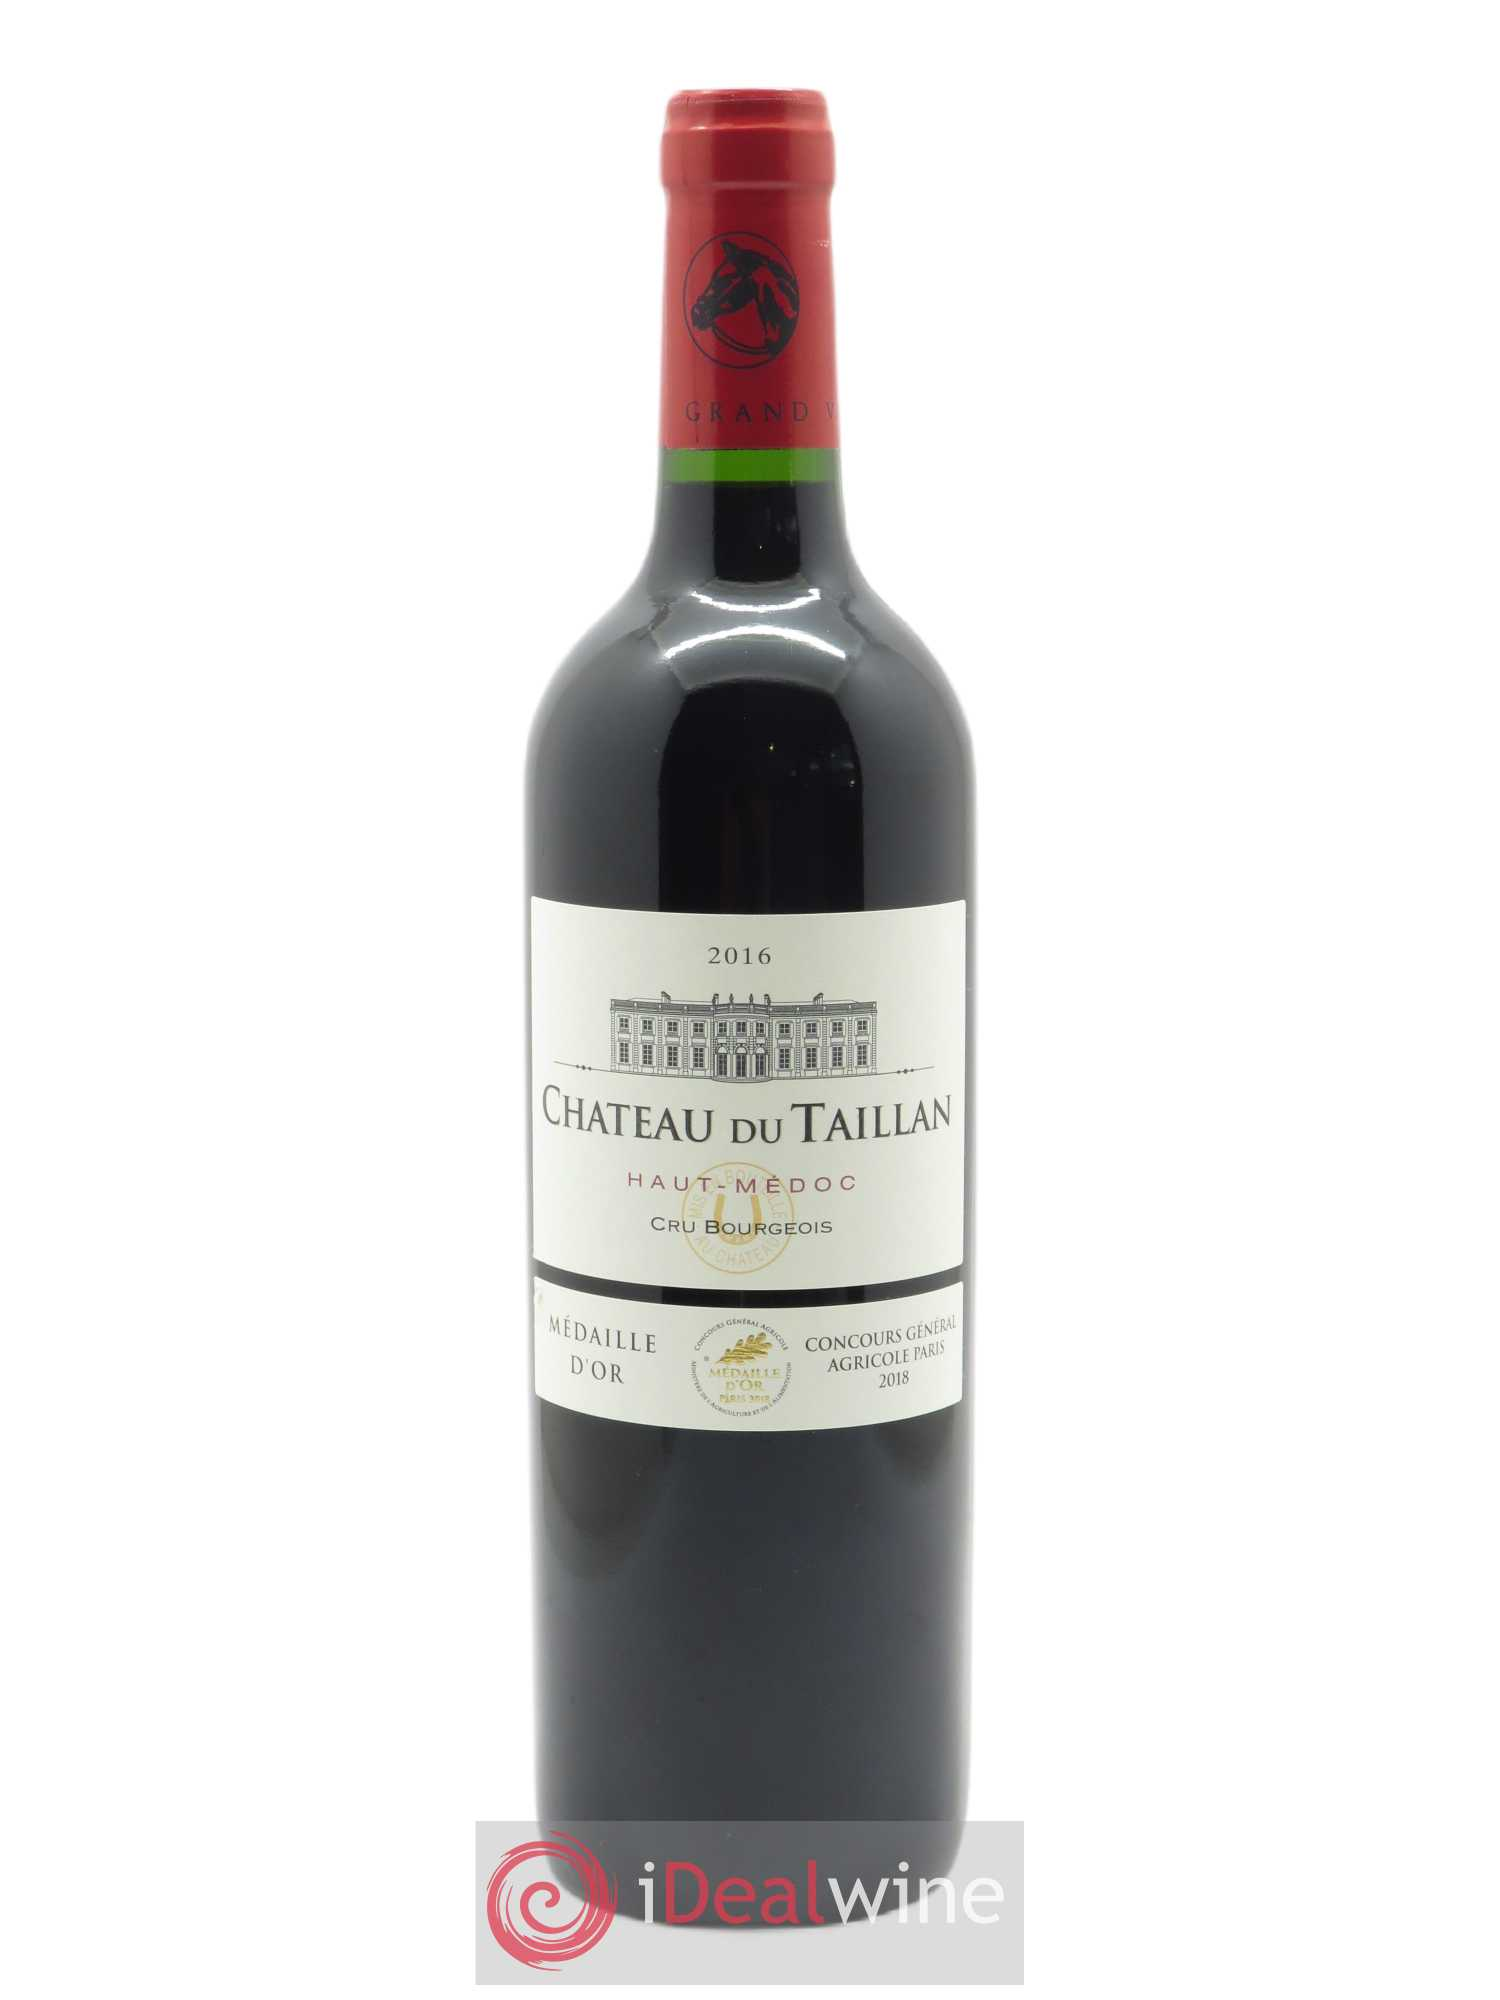 Château du Taillan Cru Bourgeois  2016 - Lot of 1 Bottle